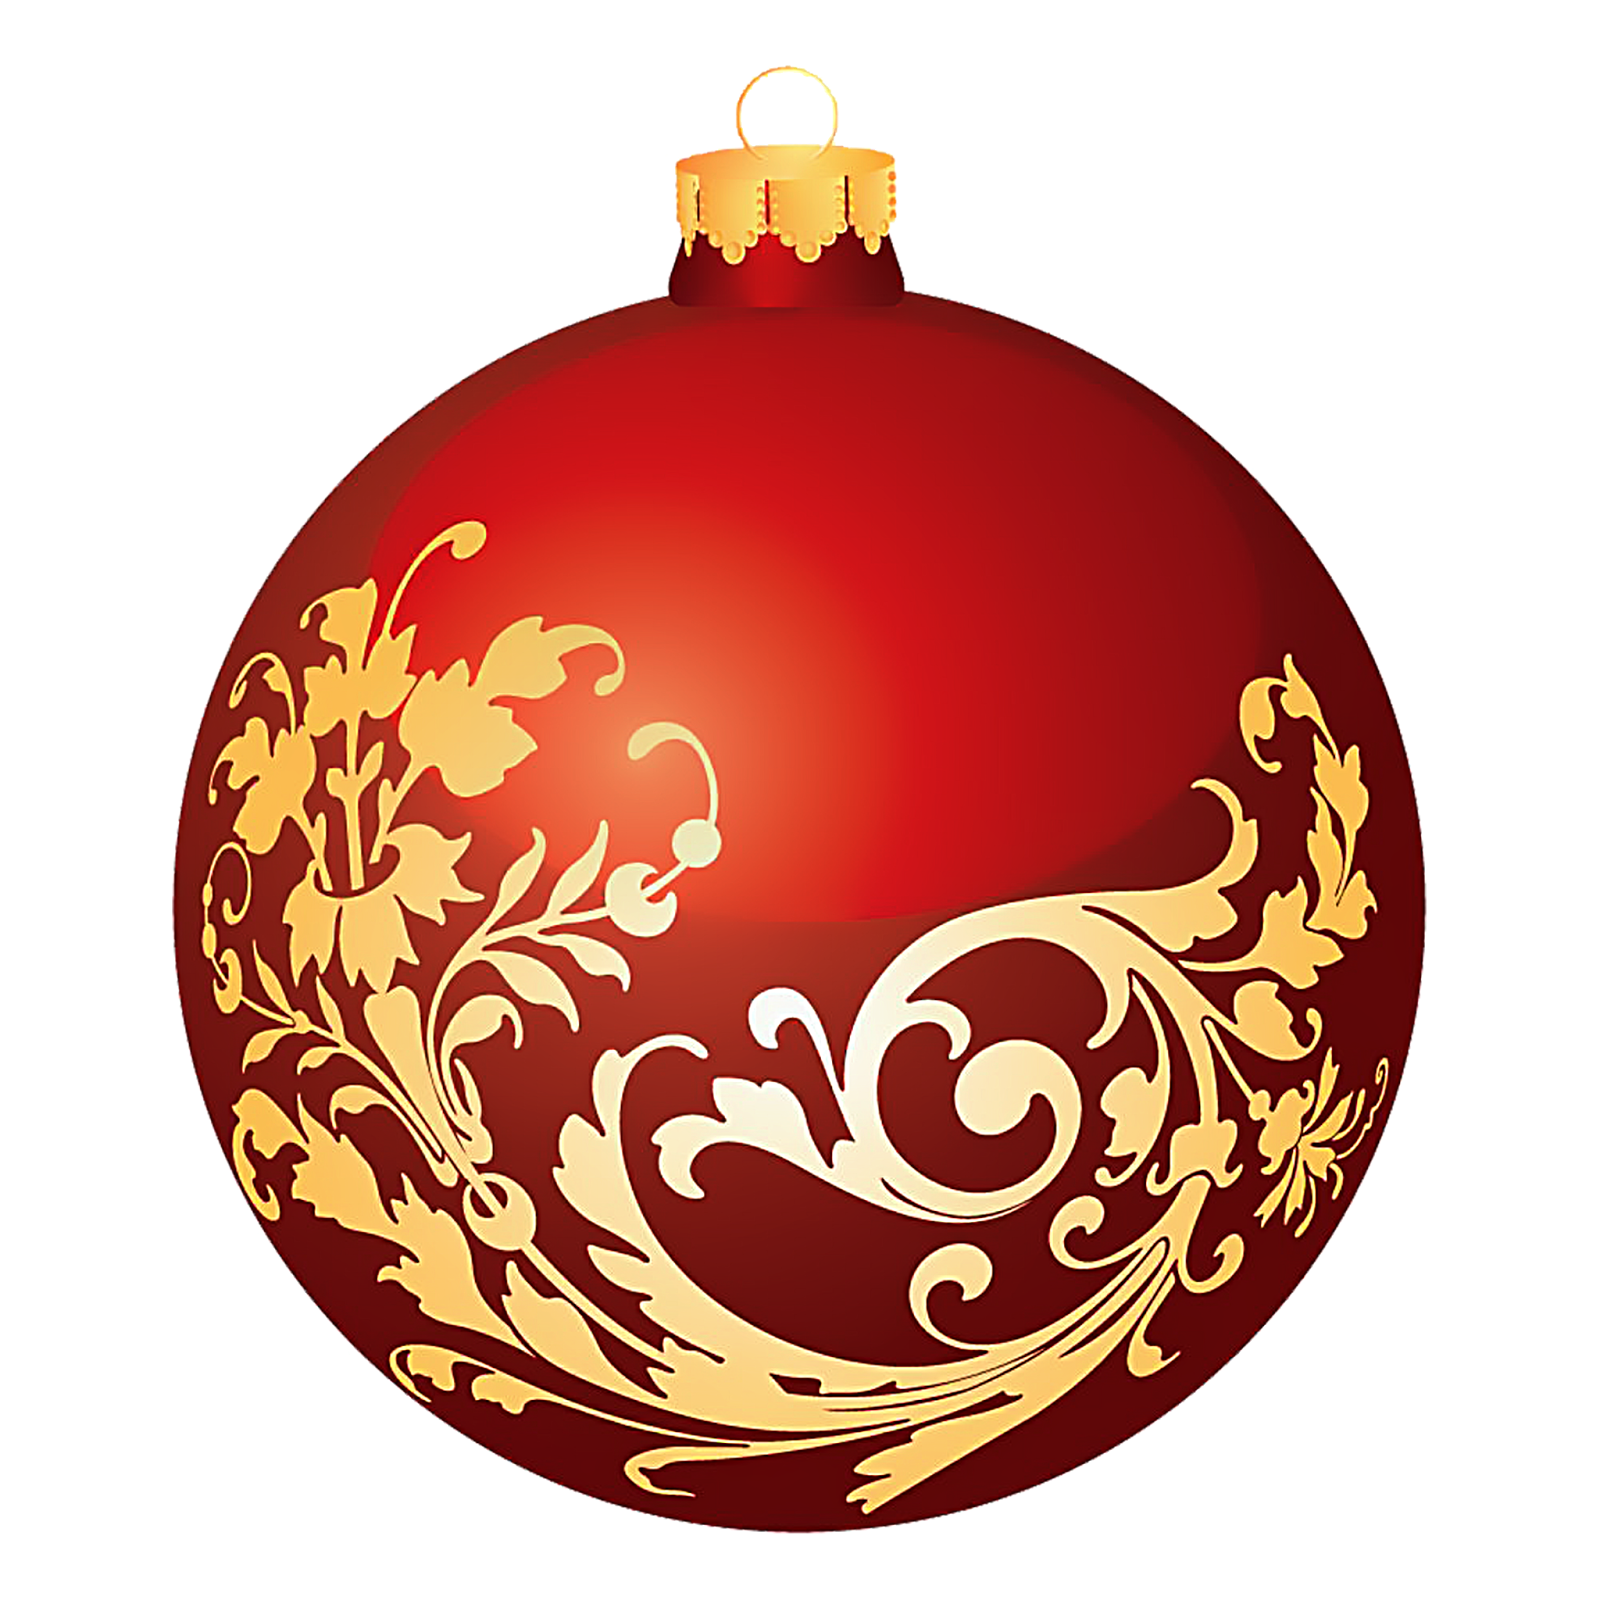 Christmas ornament clipart orange. Transparent free